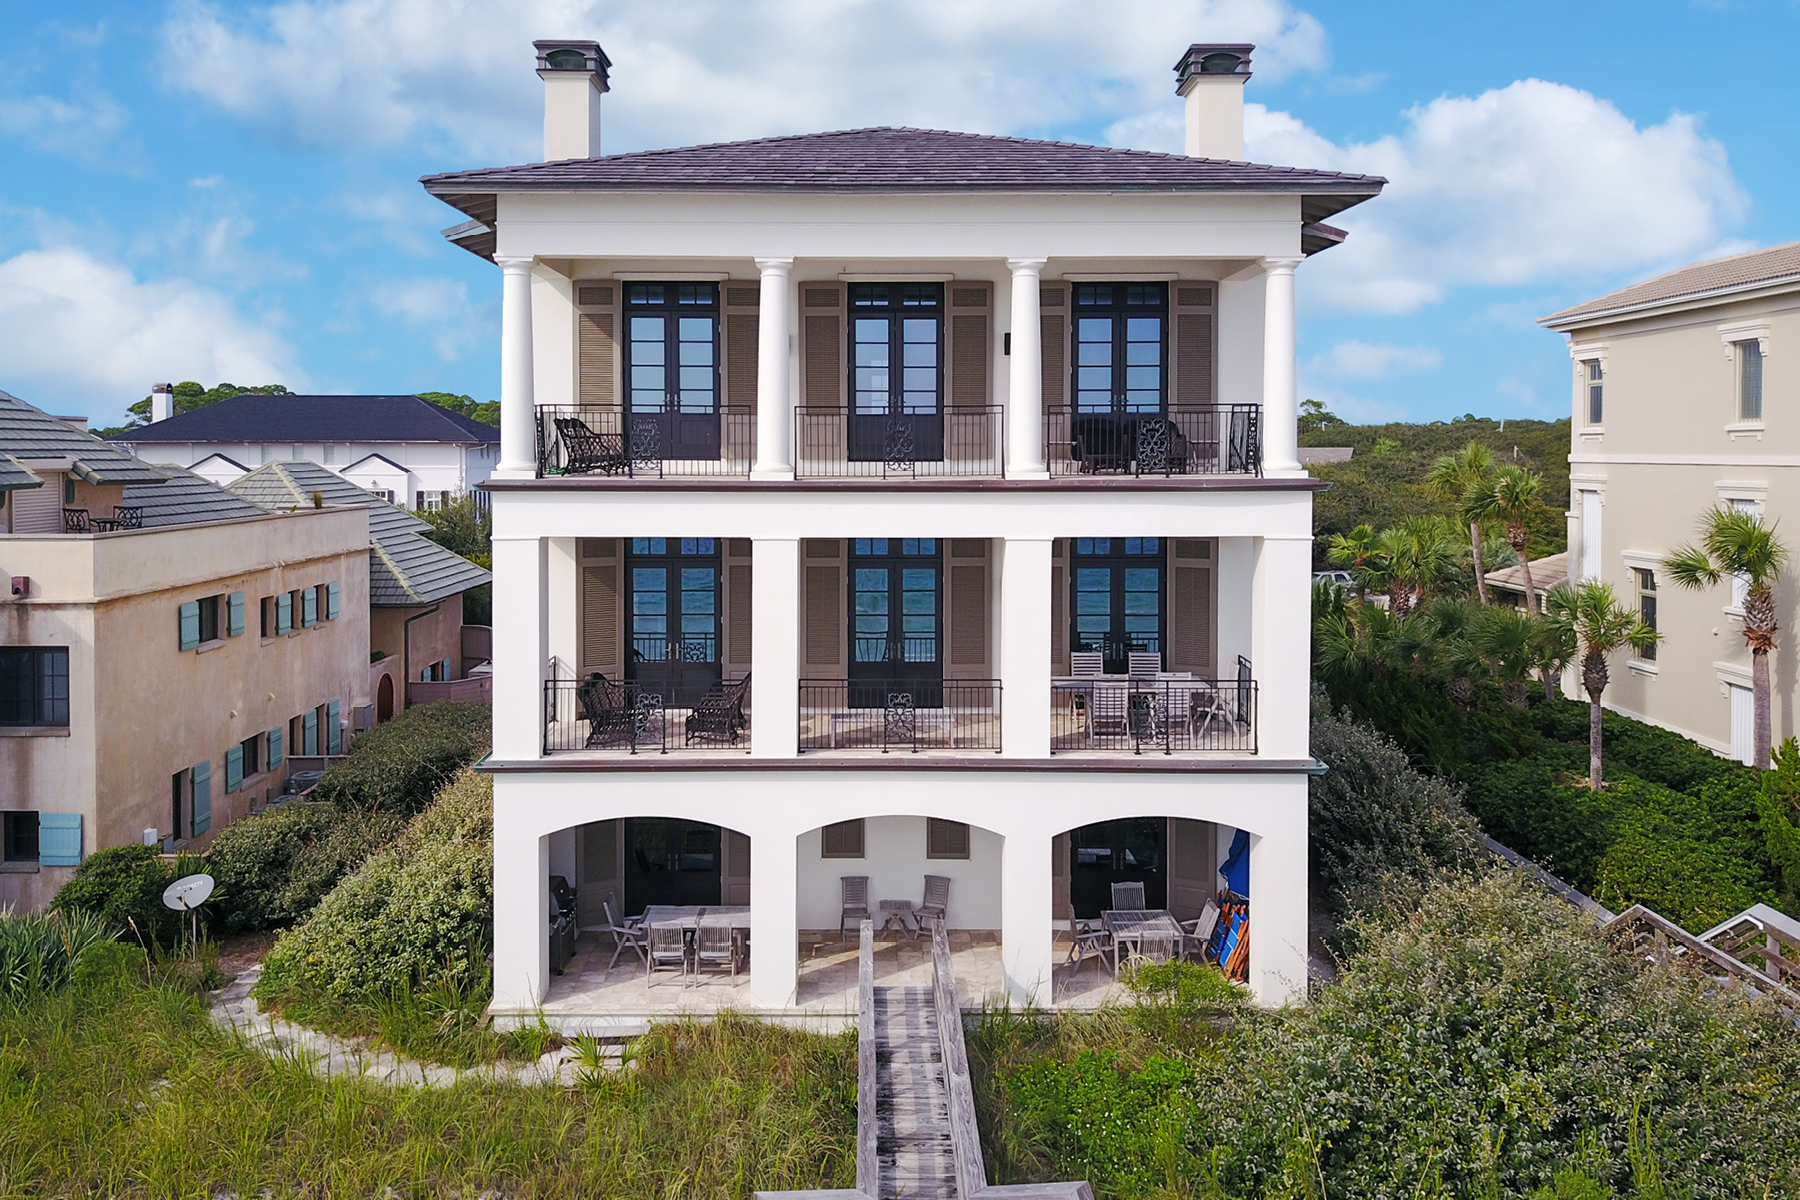 Casa Unifamiliar por un Venta en Stunning Gulf Front Home in Exclusive Gated Community 25 Stallworth Boulevard, Santa Rosa Beach, Florida, 32459 Estados Unidos